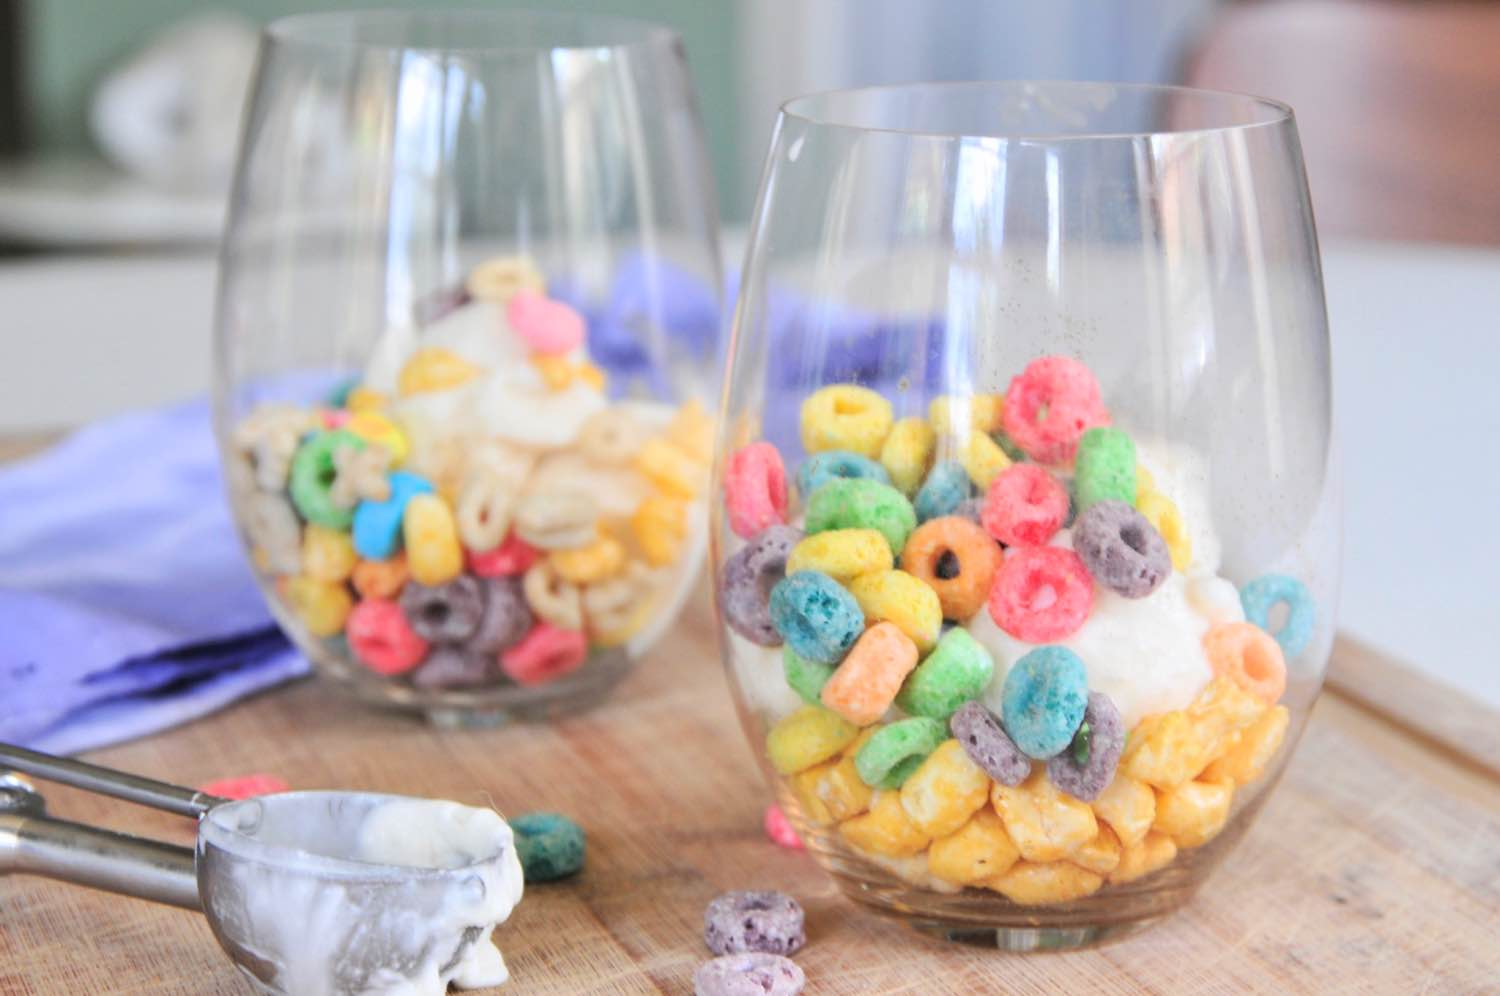 finished cereal frozen yogurt parfaits recipe pop shop america